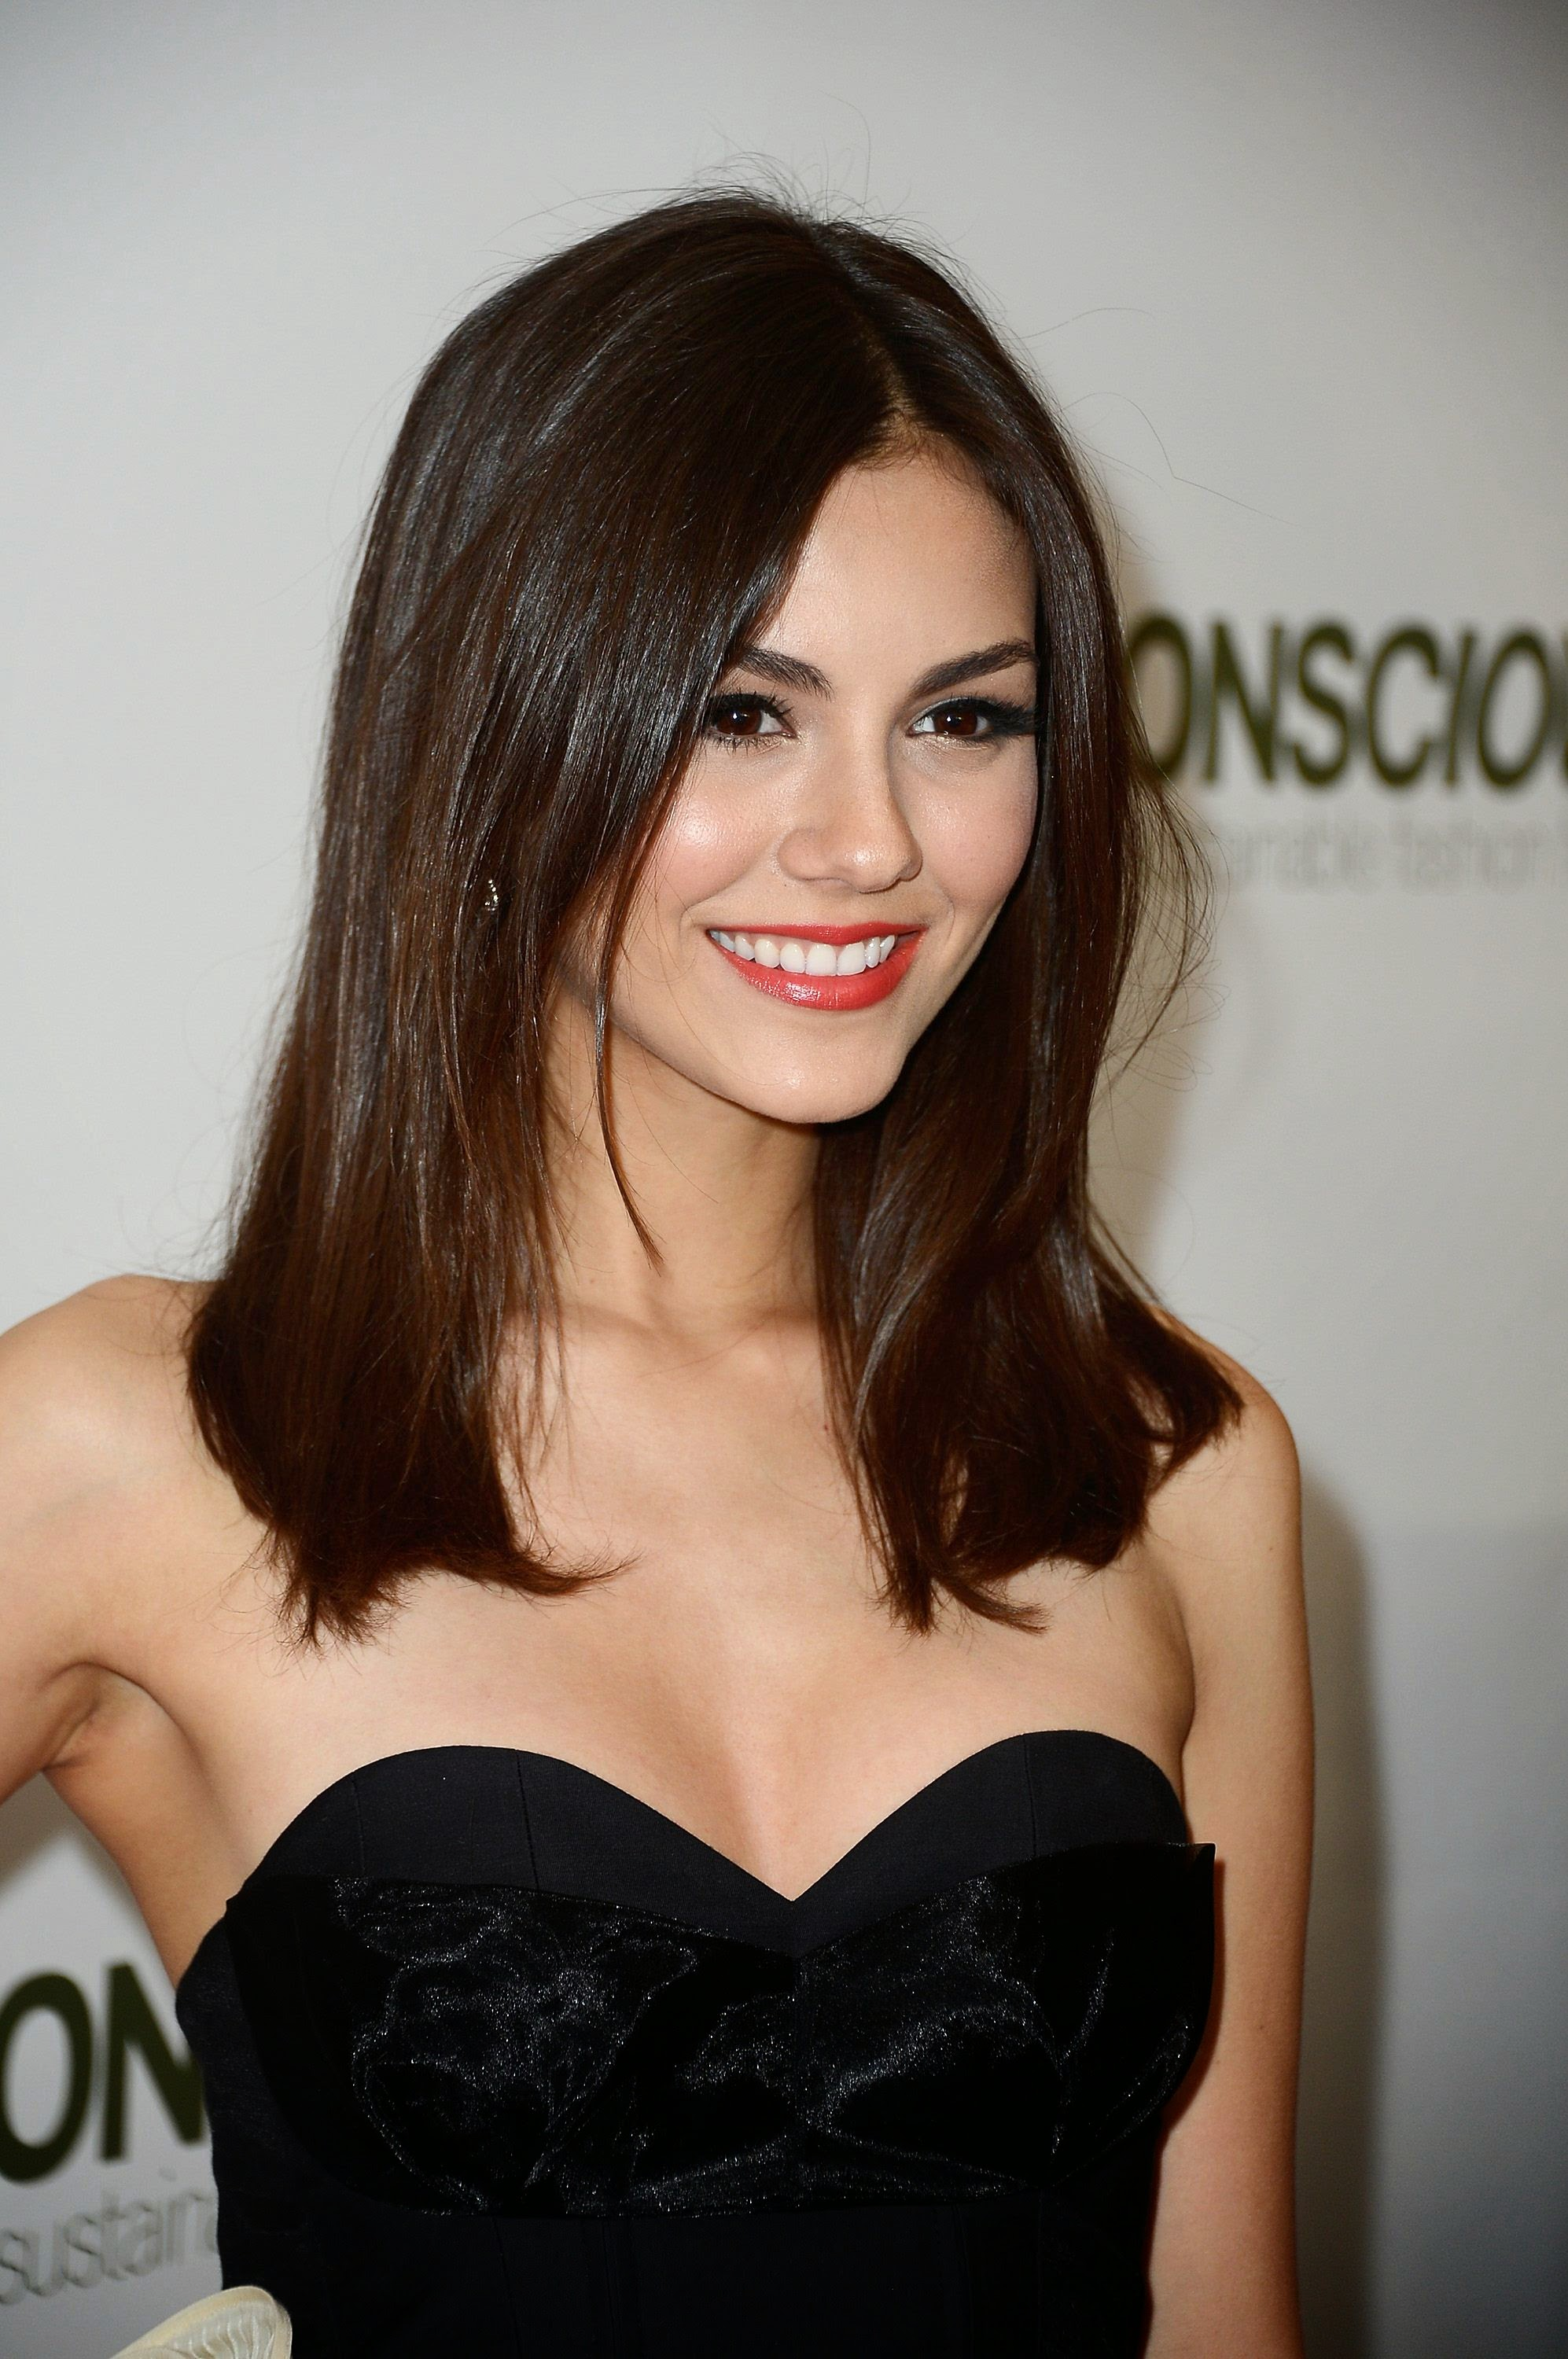 Victoria Justice Pictures Gallery 29 Film Actresses